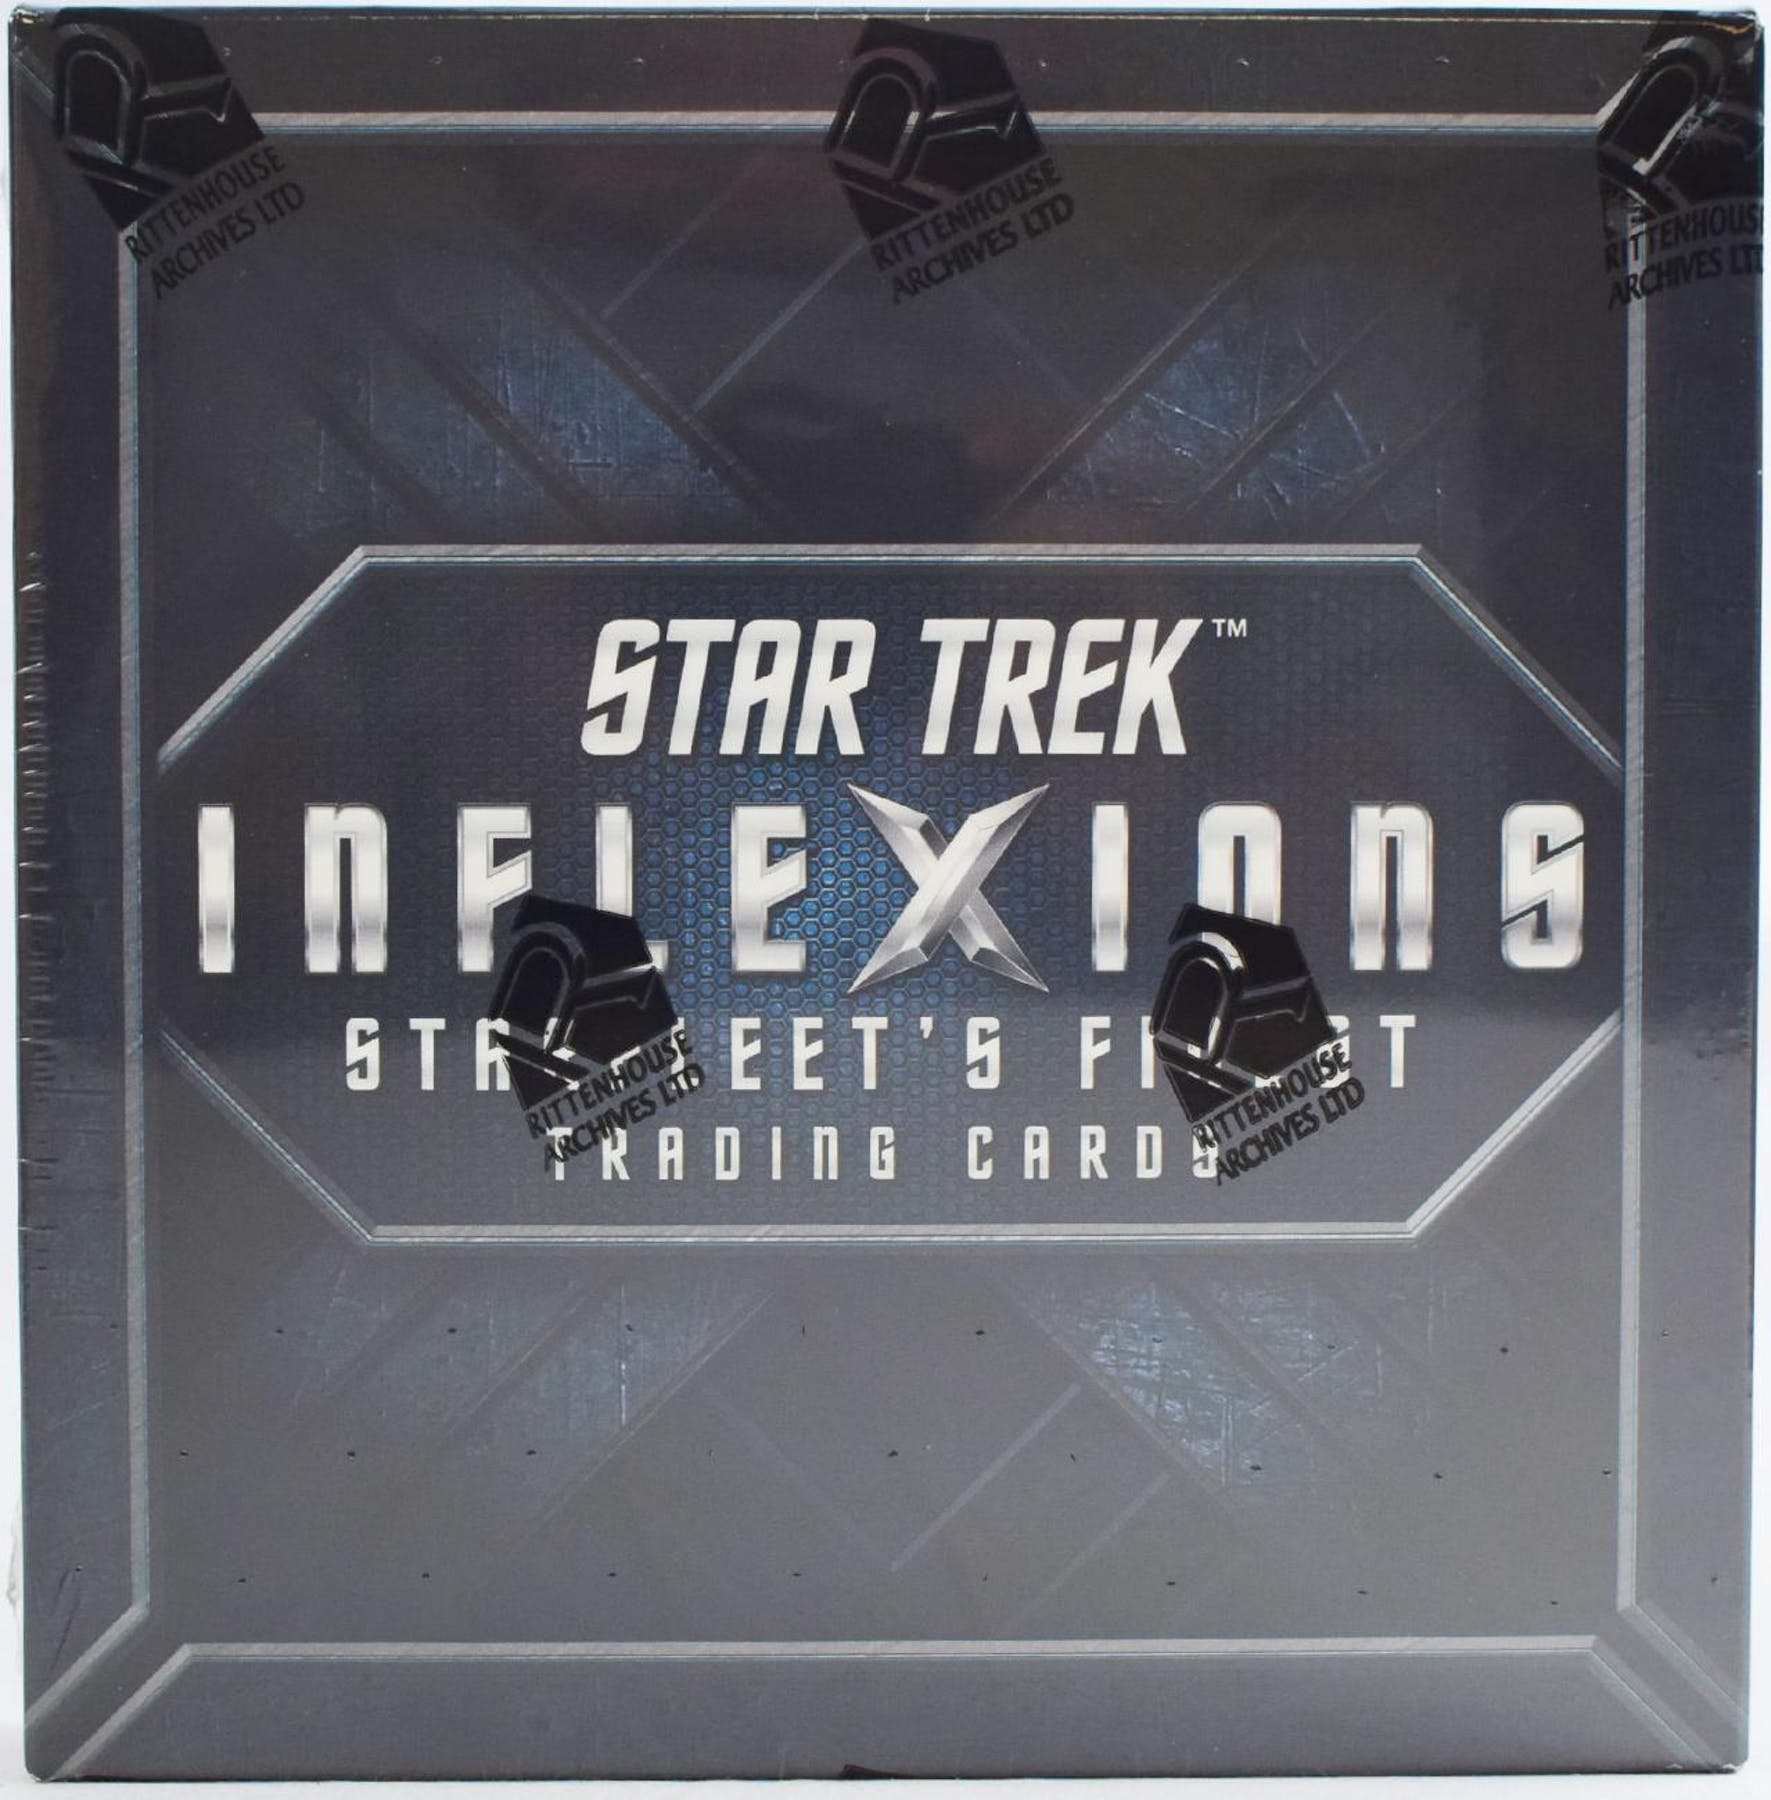 2019 Rittenhouse Star Trek Inflexions Starfleet's Finest Trading Cards Box | Eastridge Sports Cards